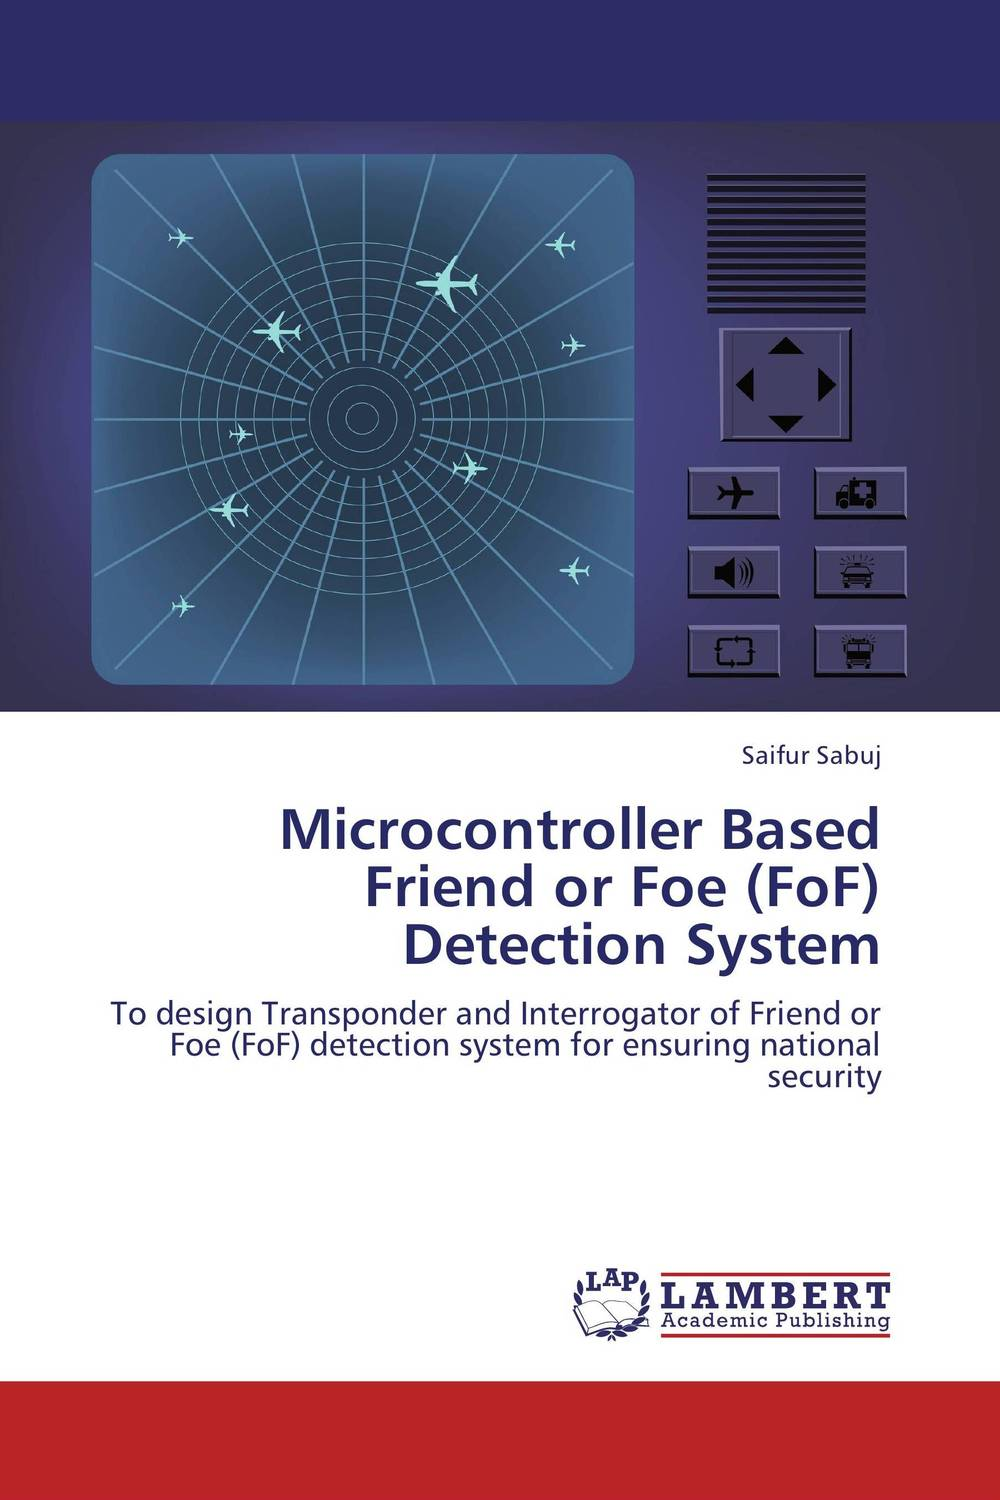 Microcontroller Based Friend or Foe (FoF) Detection System our mutual friend